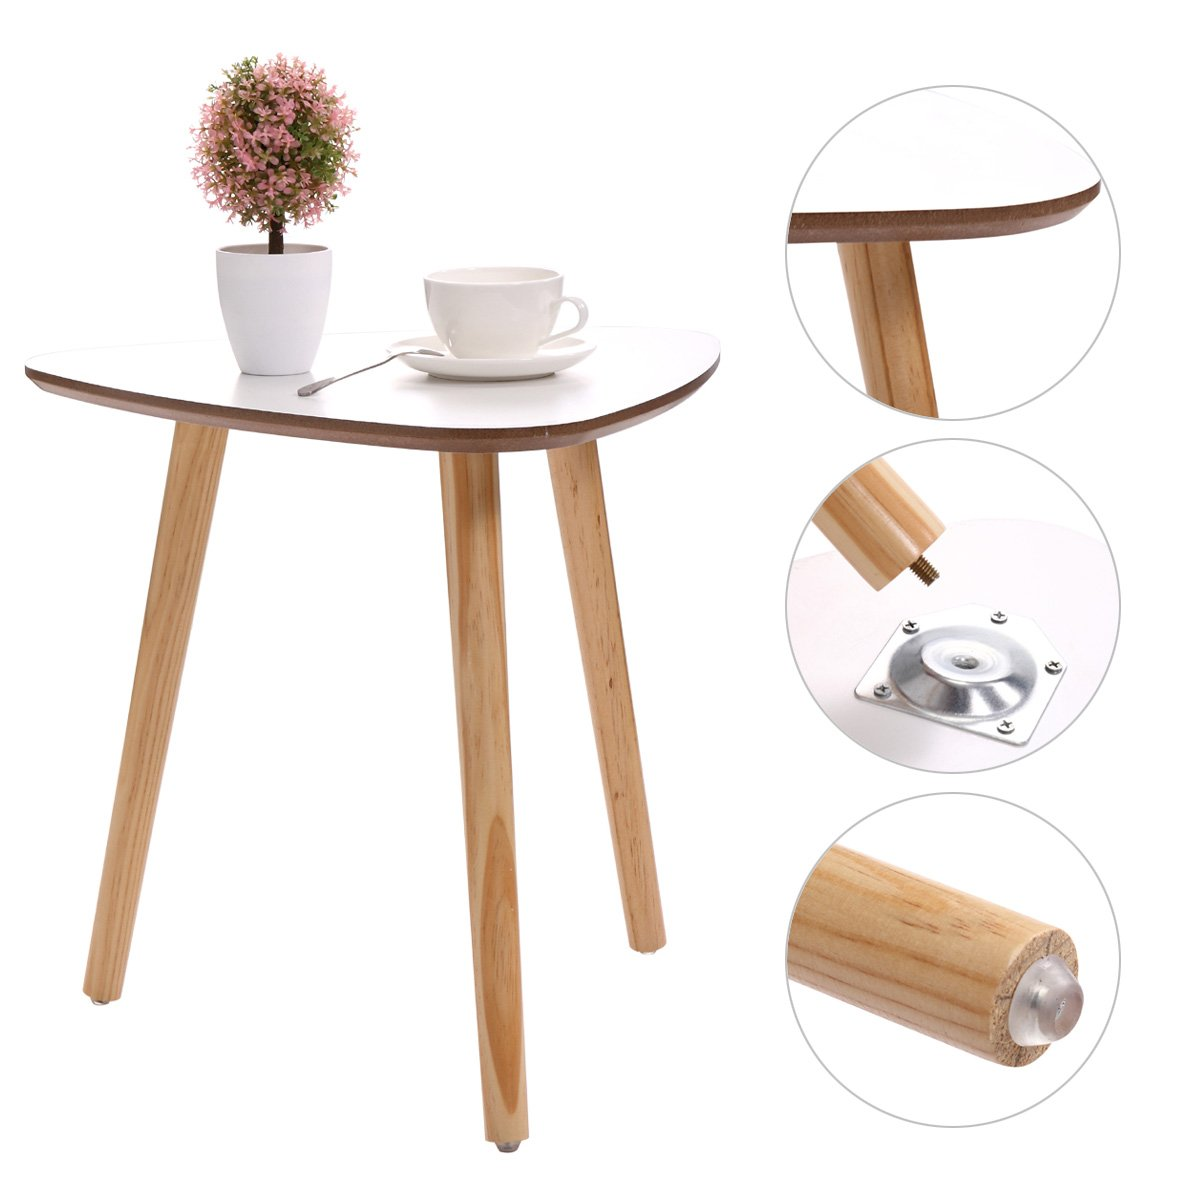 JAXPETY Three Legged Bamboo End Table • Modern Triangle Coffee Table • Real Bamboo Furniture • Environmentally Friendly Side Table for Magazines, Books & Plants